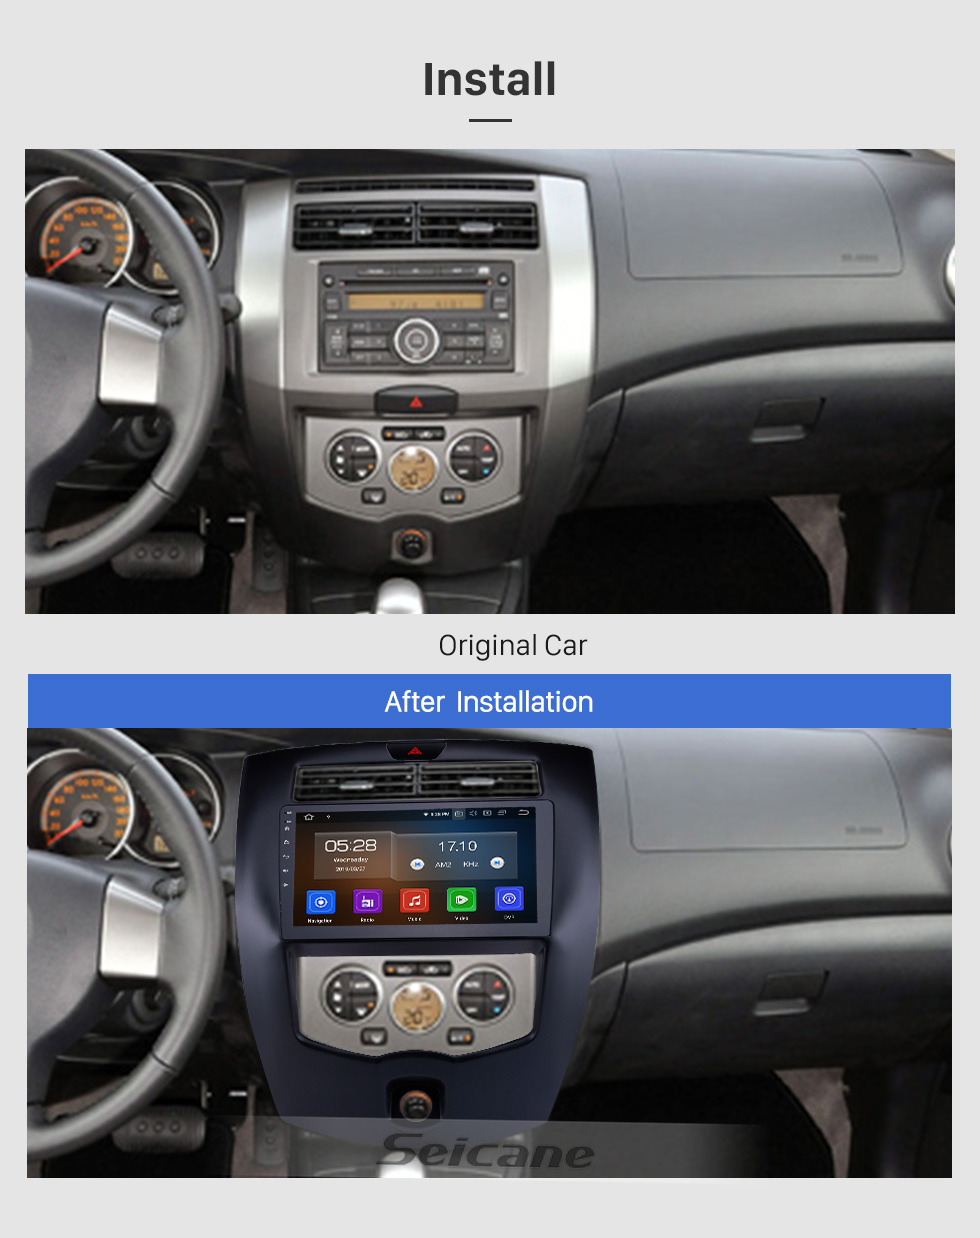 Seicane 10.1 inch Android 9.0 Radio for 2013-2016 Nissan Livina LHD with GPS Navigation HD Touchscreen Bluetooth Carplay support Rearview camera DAB+